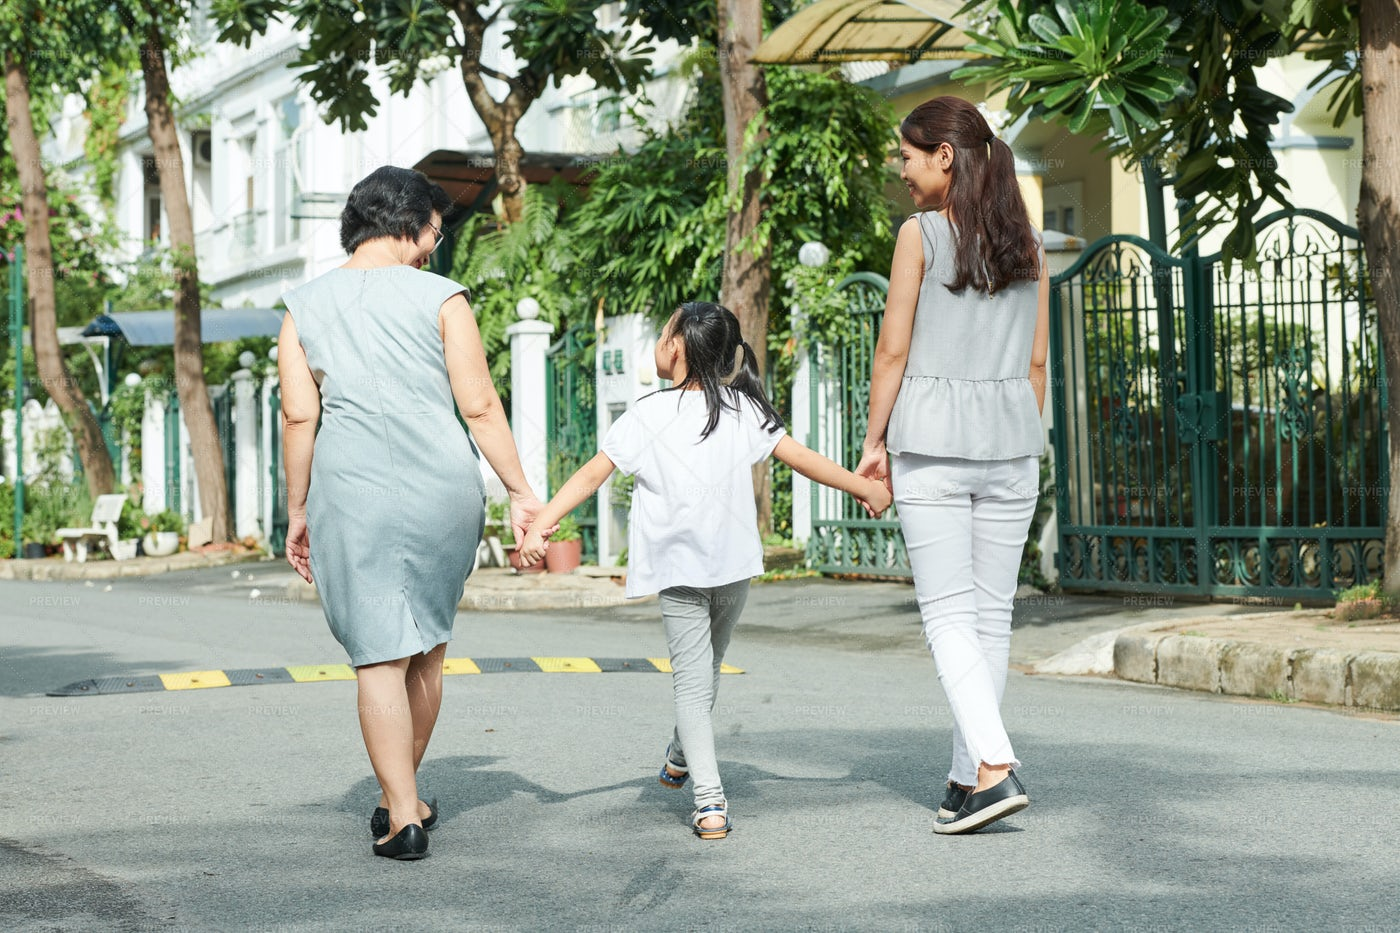 Family Walking In The City: Stock Photos